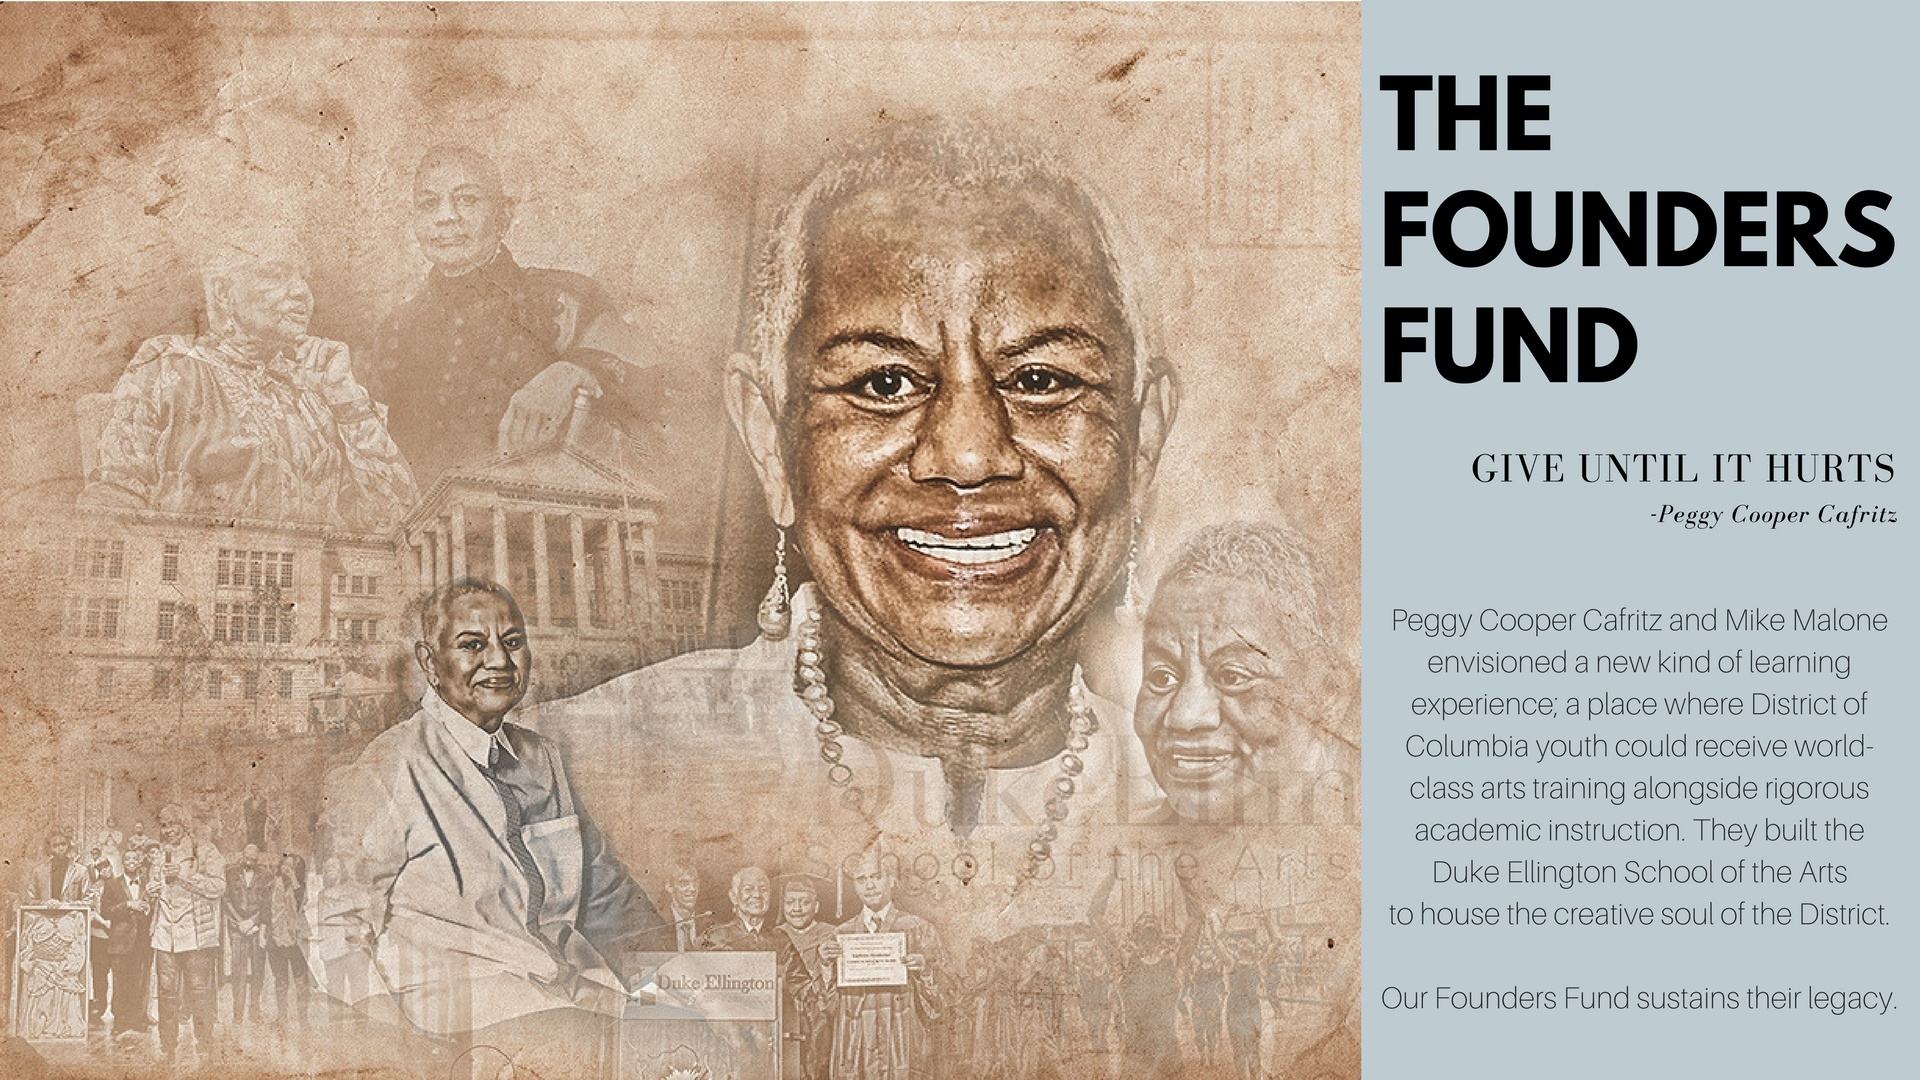 Peggy Founders Fund